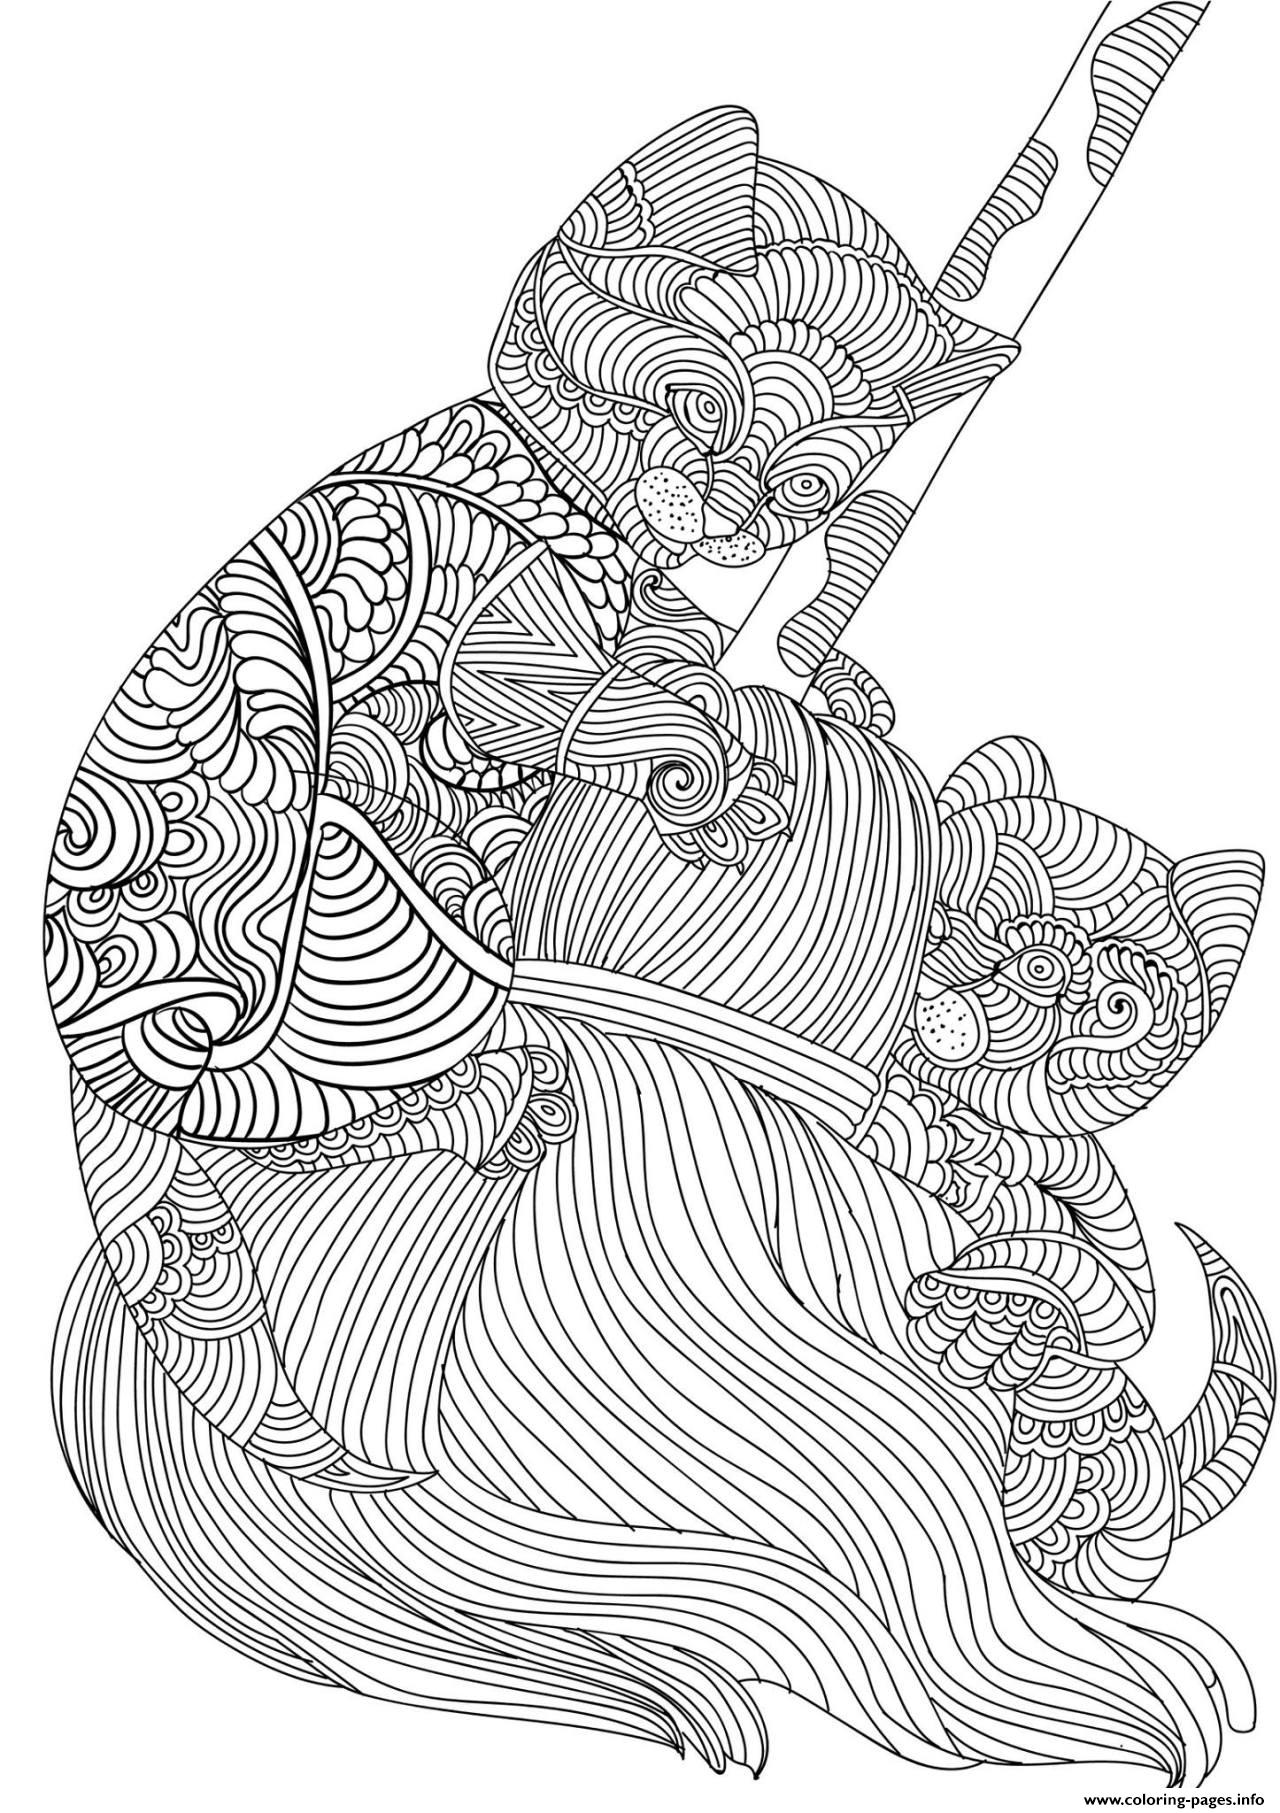 Cat Baby Adult Animal Zen Coloring Pages Printable